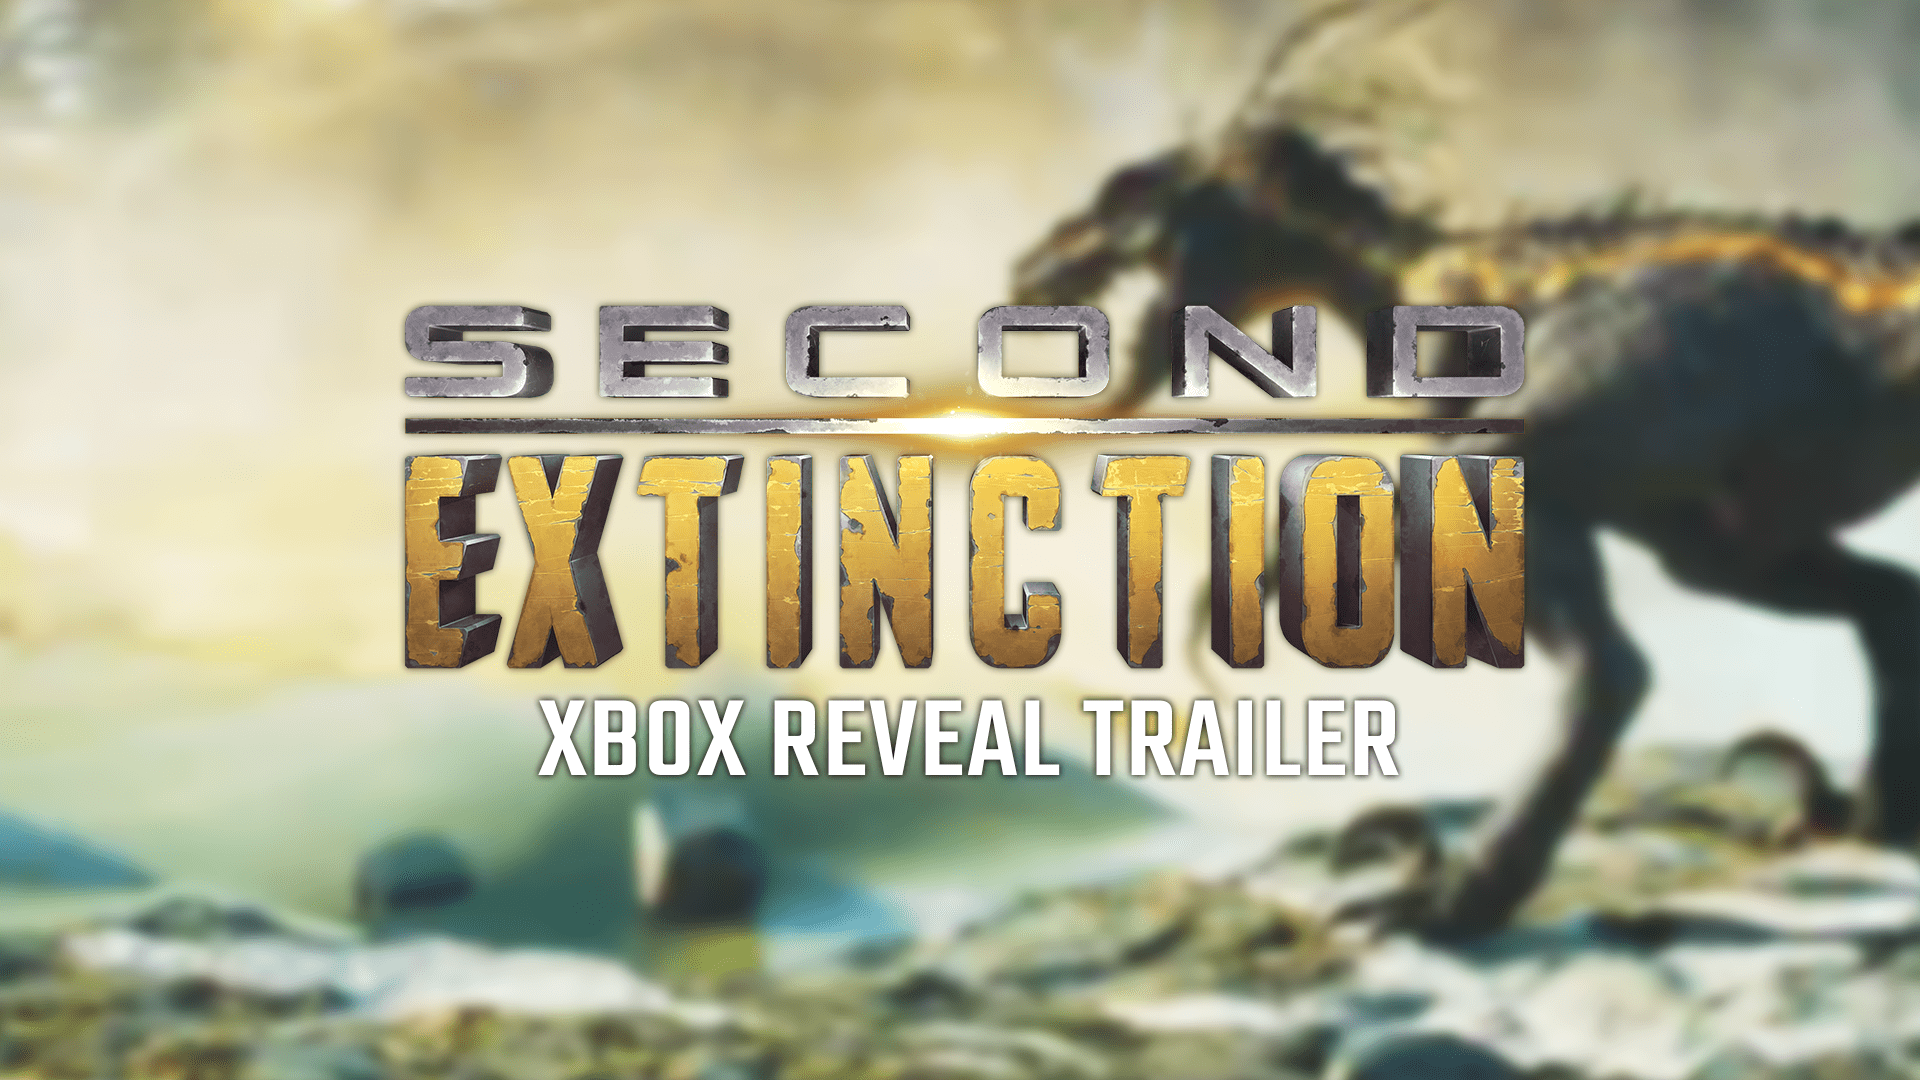 Second Extinction Xbox Reveal Trailer out now!